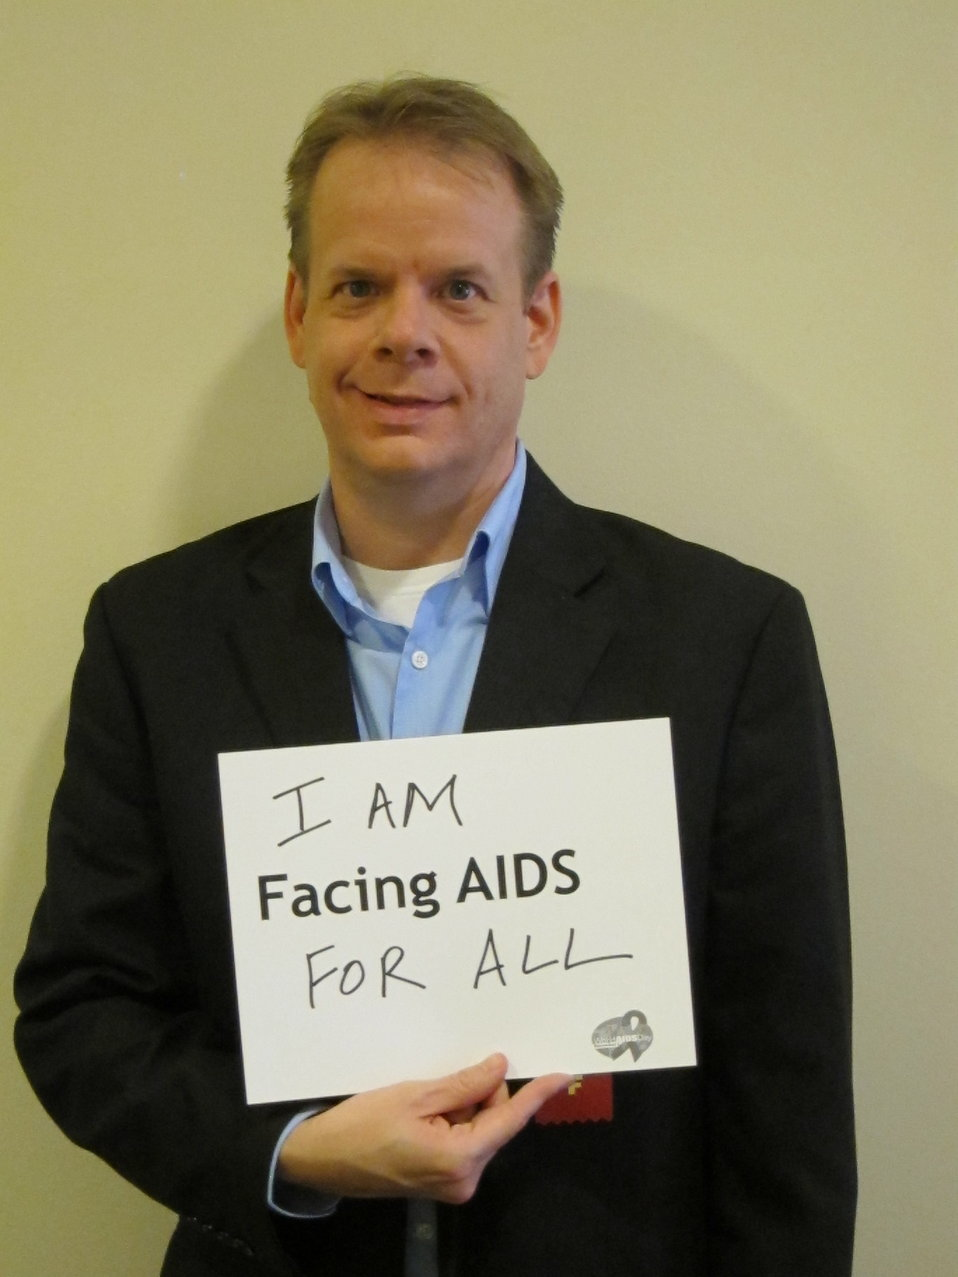 I am FACING AIDS for all.